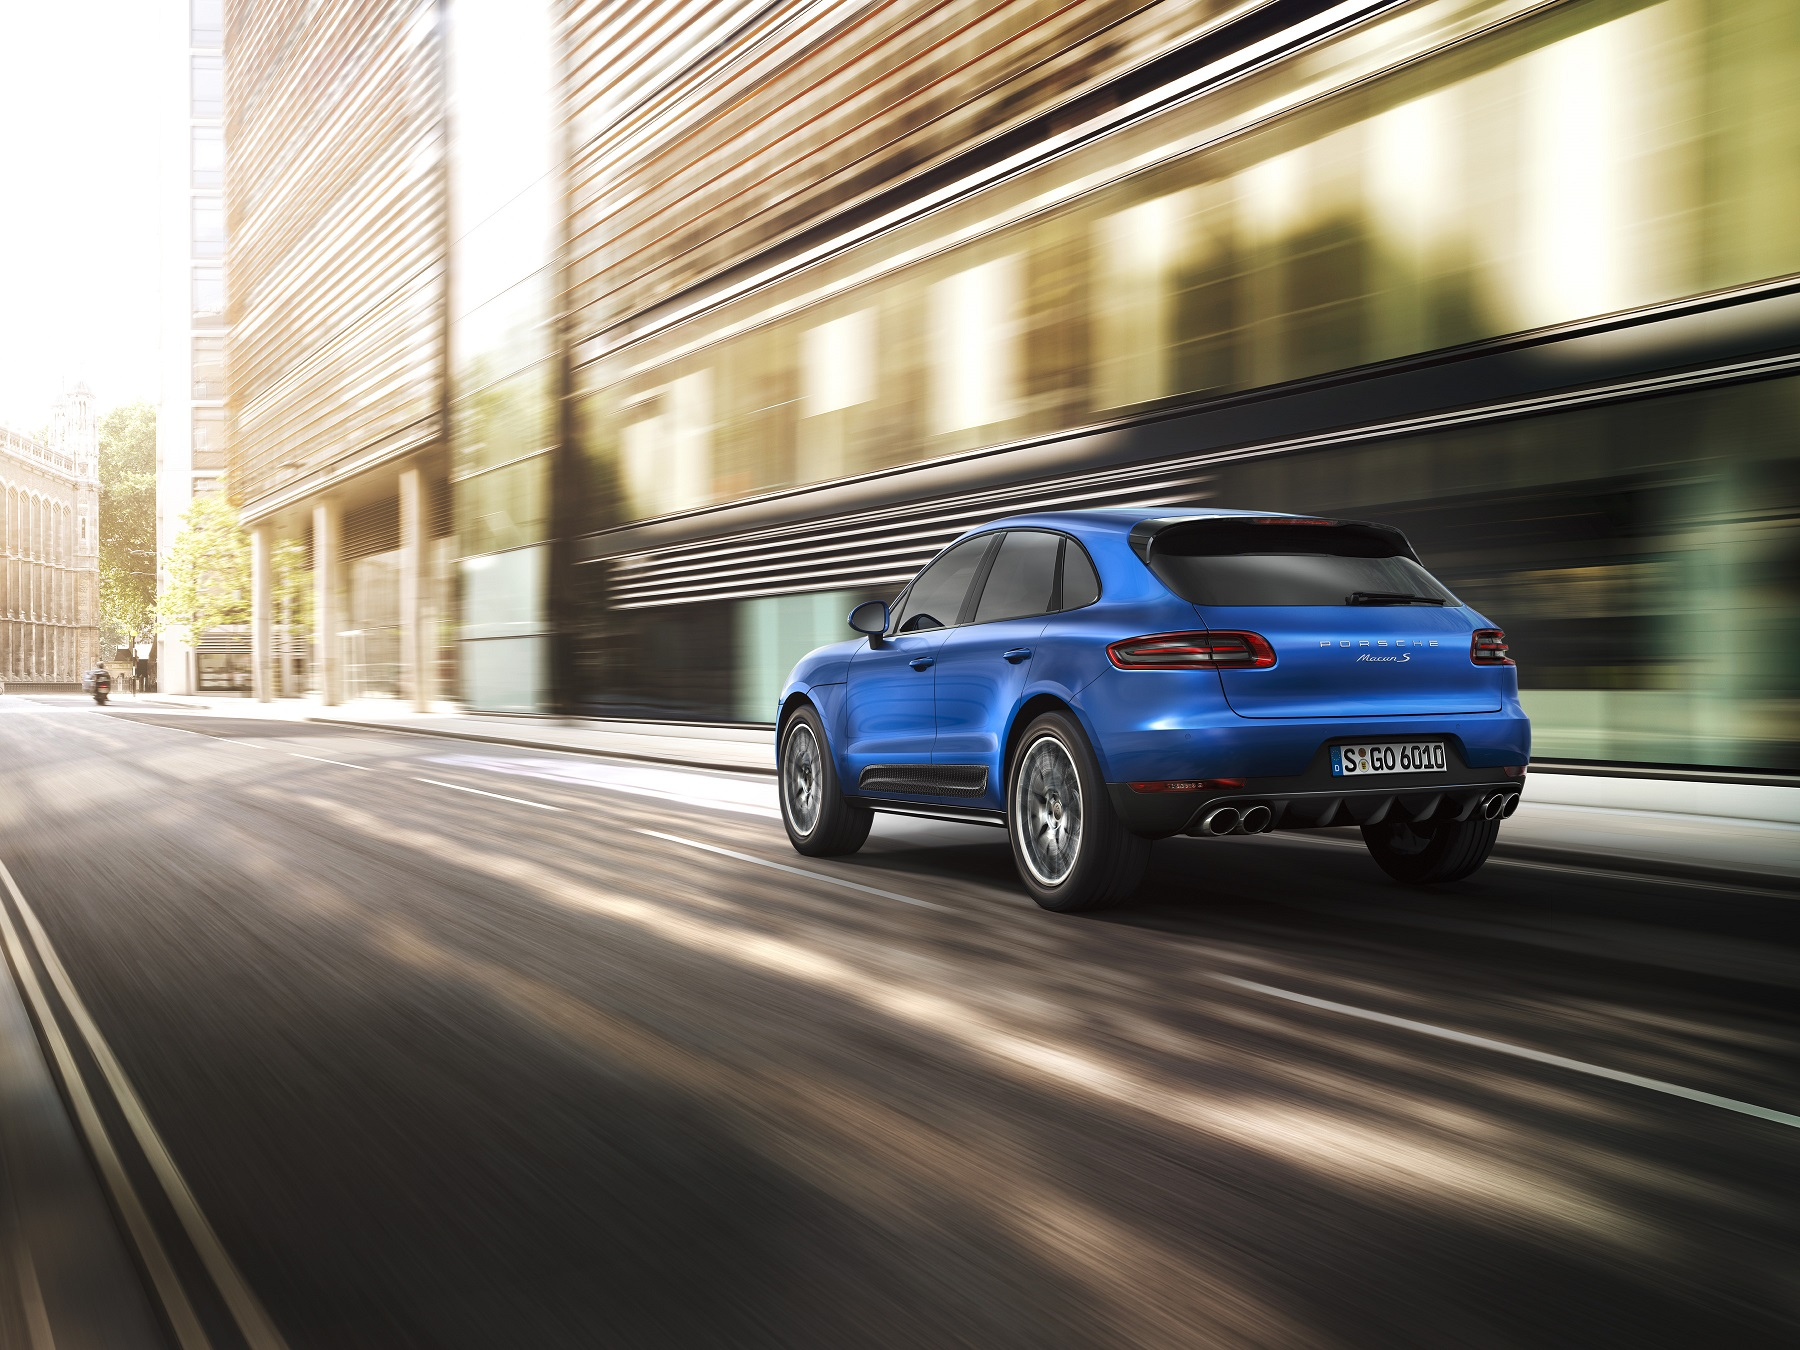 Manufacturer photo: The 2015 Porsche Macan is poised to set new standards in the field of driving dynamics and enjoyment -- on both pavement and off road trails